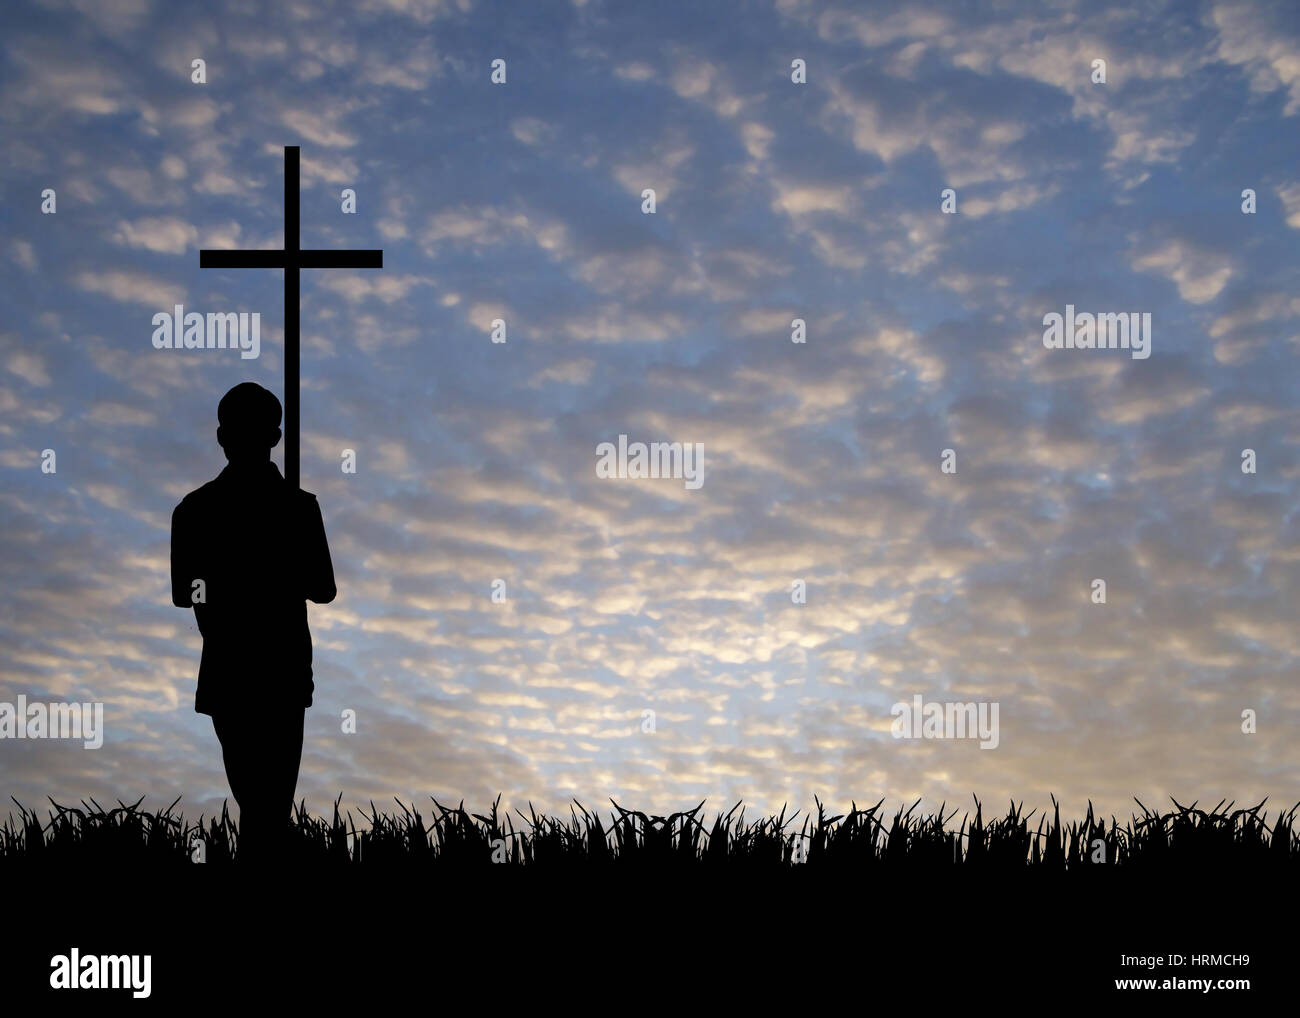 Christian Worship Clipart | Free Images at Clker.com - vector clip art  online, royalty free & public domain